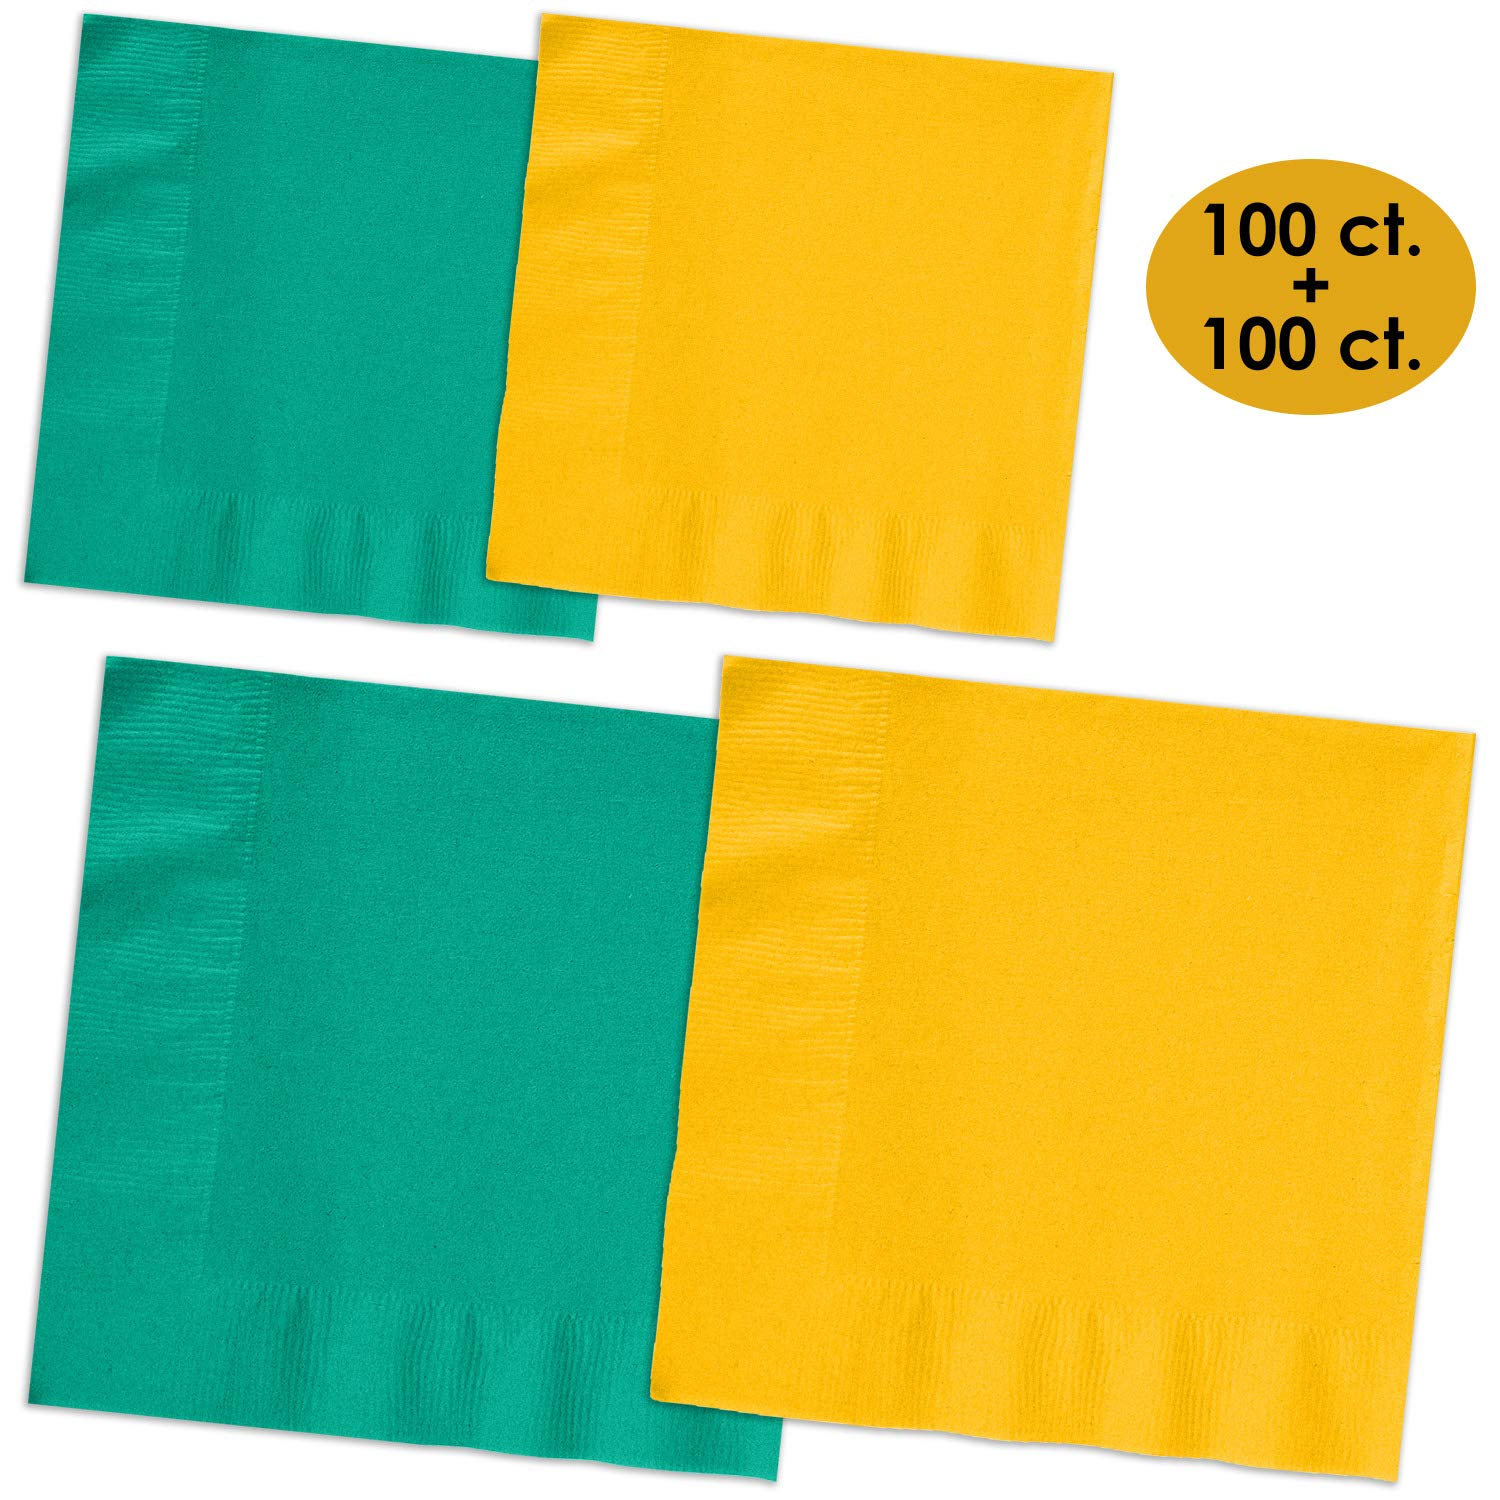 200 Napkins - Teal & Sunshine Yellow - 100 Beverage Napkins + 100 Luncheon Napkins, 2-Ply, 50 Per Color Per Type